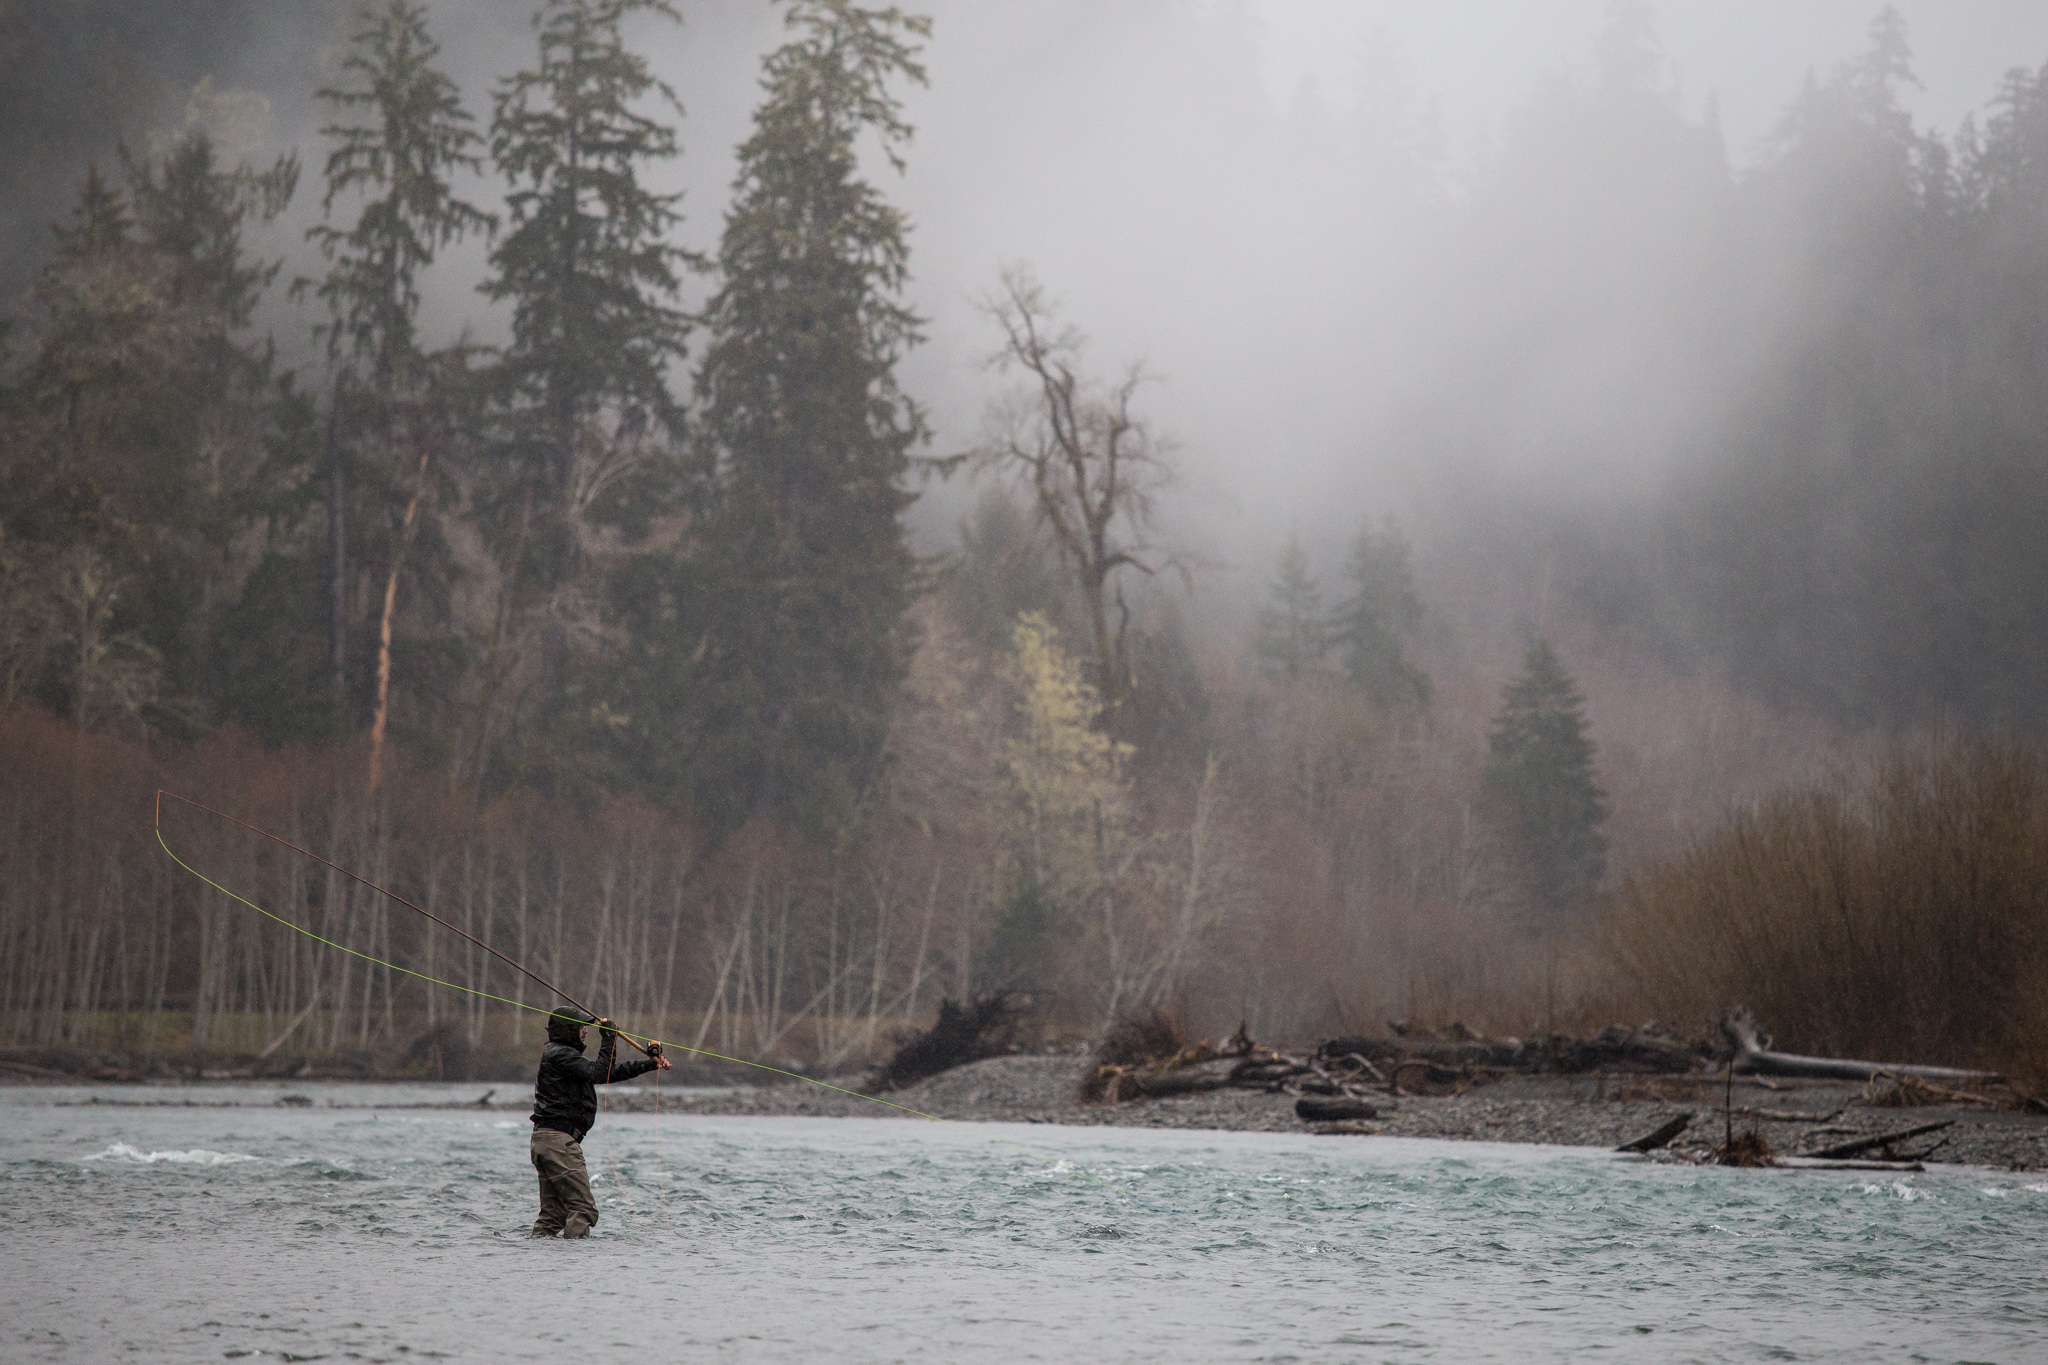 Washington Steelhead Fly Fishing Guide Service